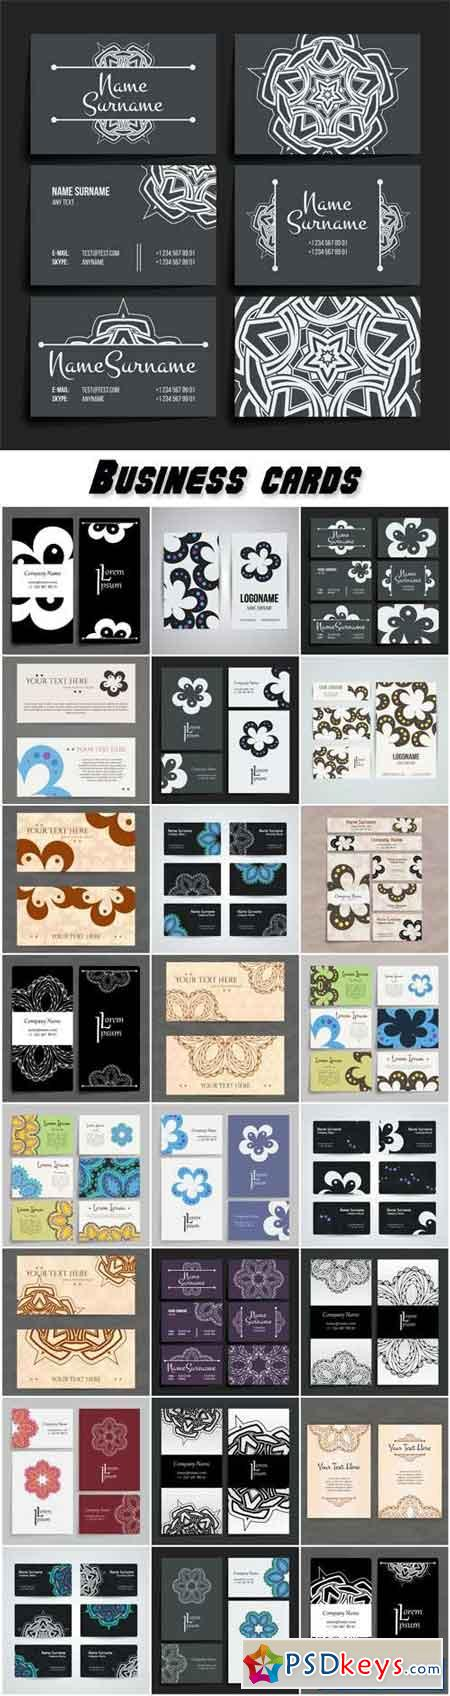 Business cards vector, arabian patterns